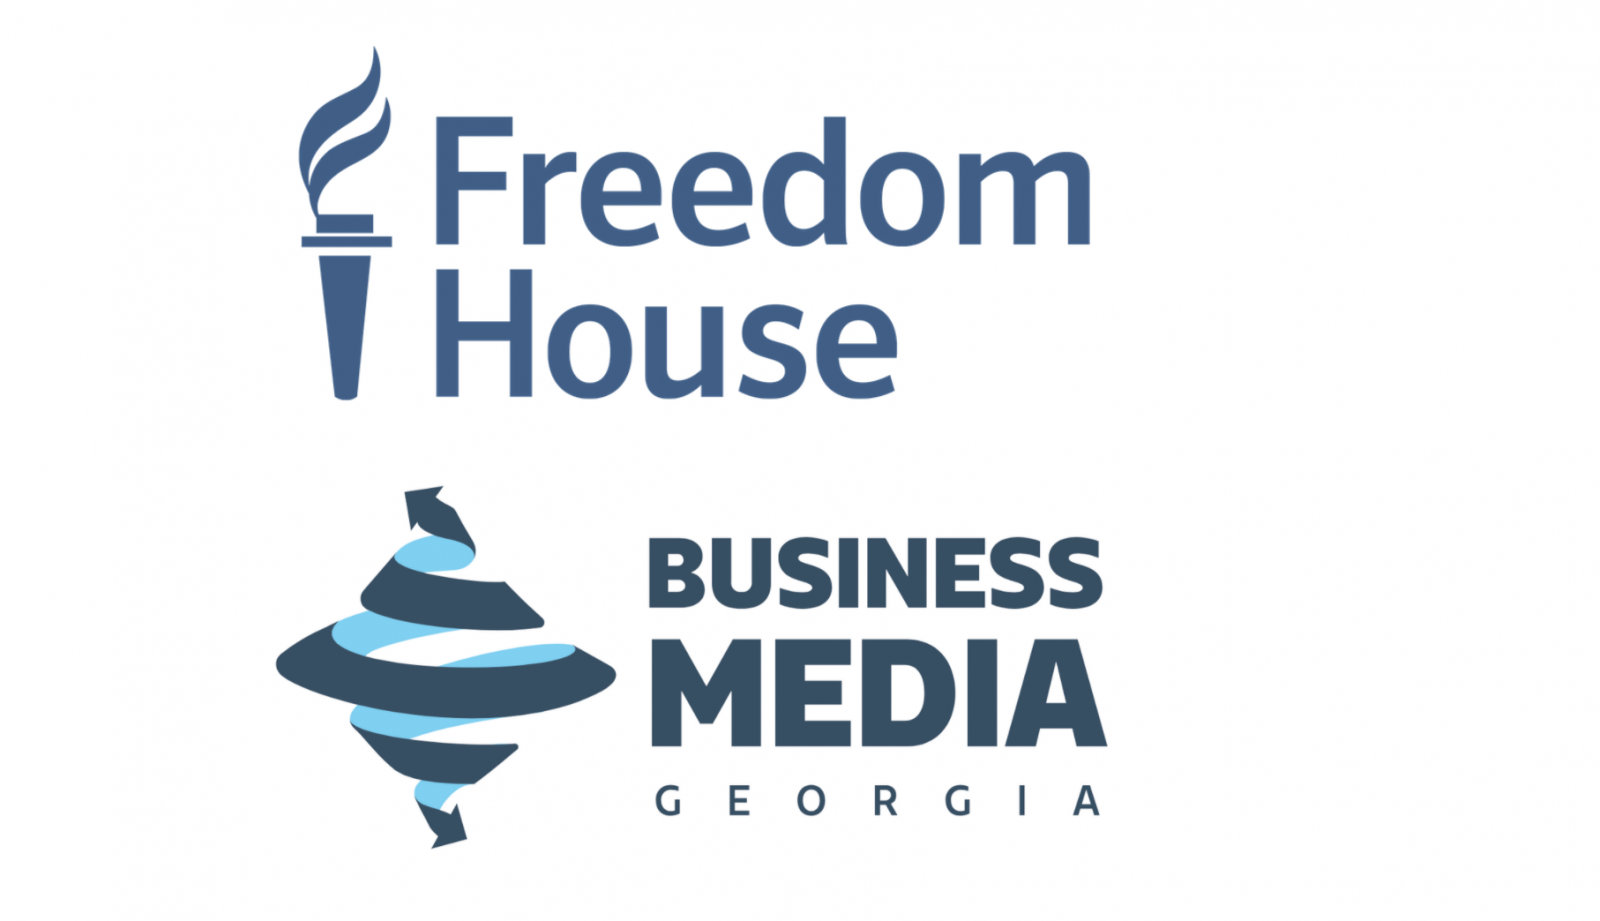 Freedom House Cites BM.GE Twice